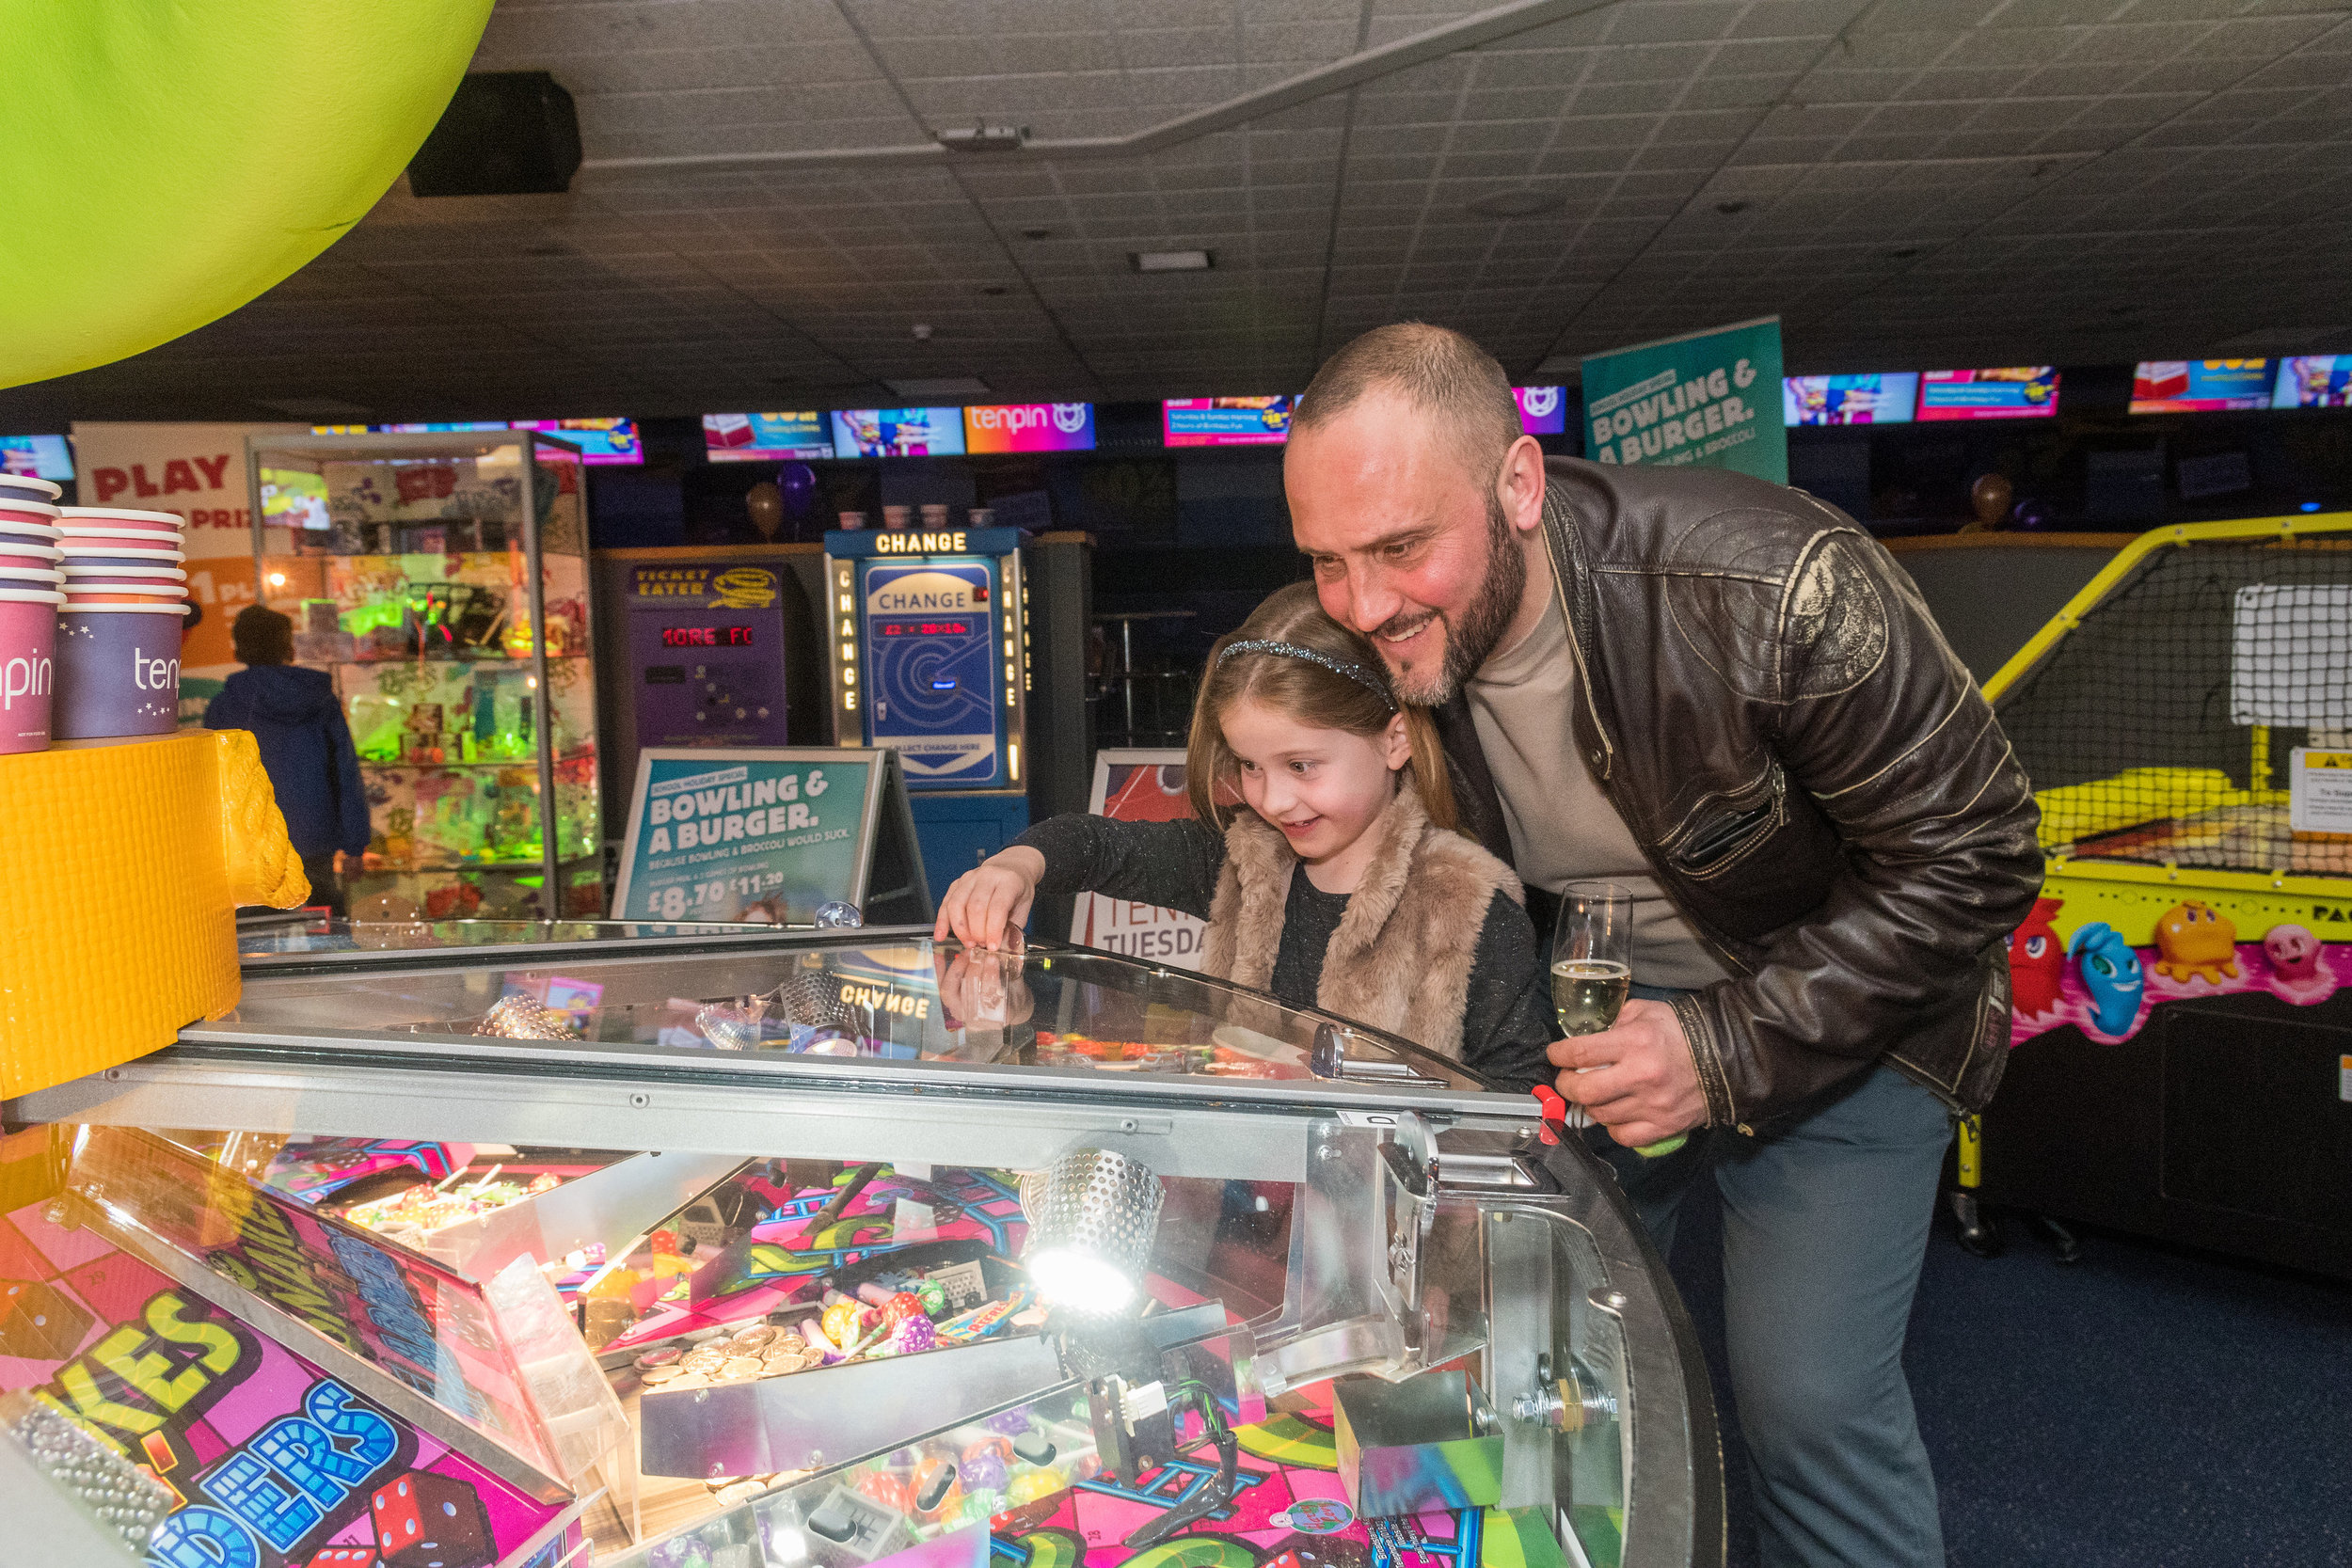 Former Derby County player - and BBC Radio Derby commentator - Craig Ramage was one of the special guests as Tenpin Derby held a special relaunch event following their £270,000 refurbishment in March. Penguin PR: public relations, media and communications